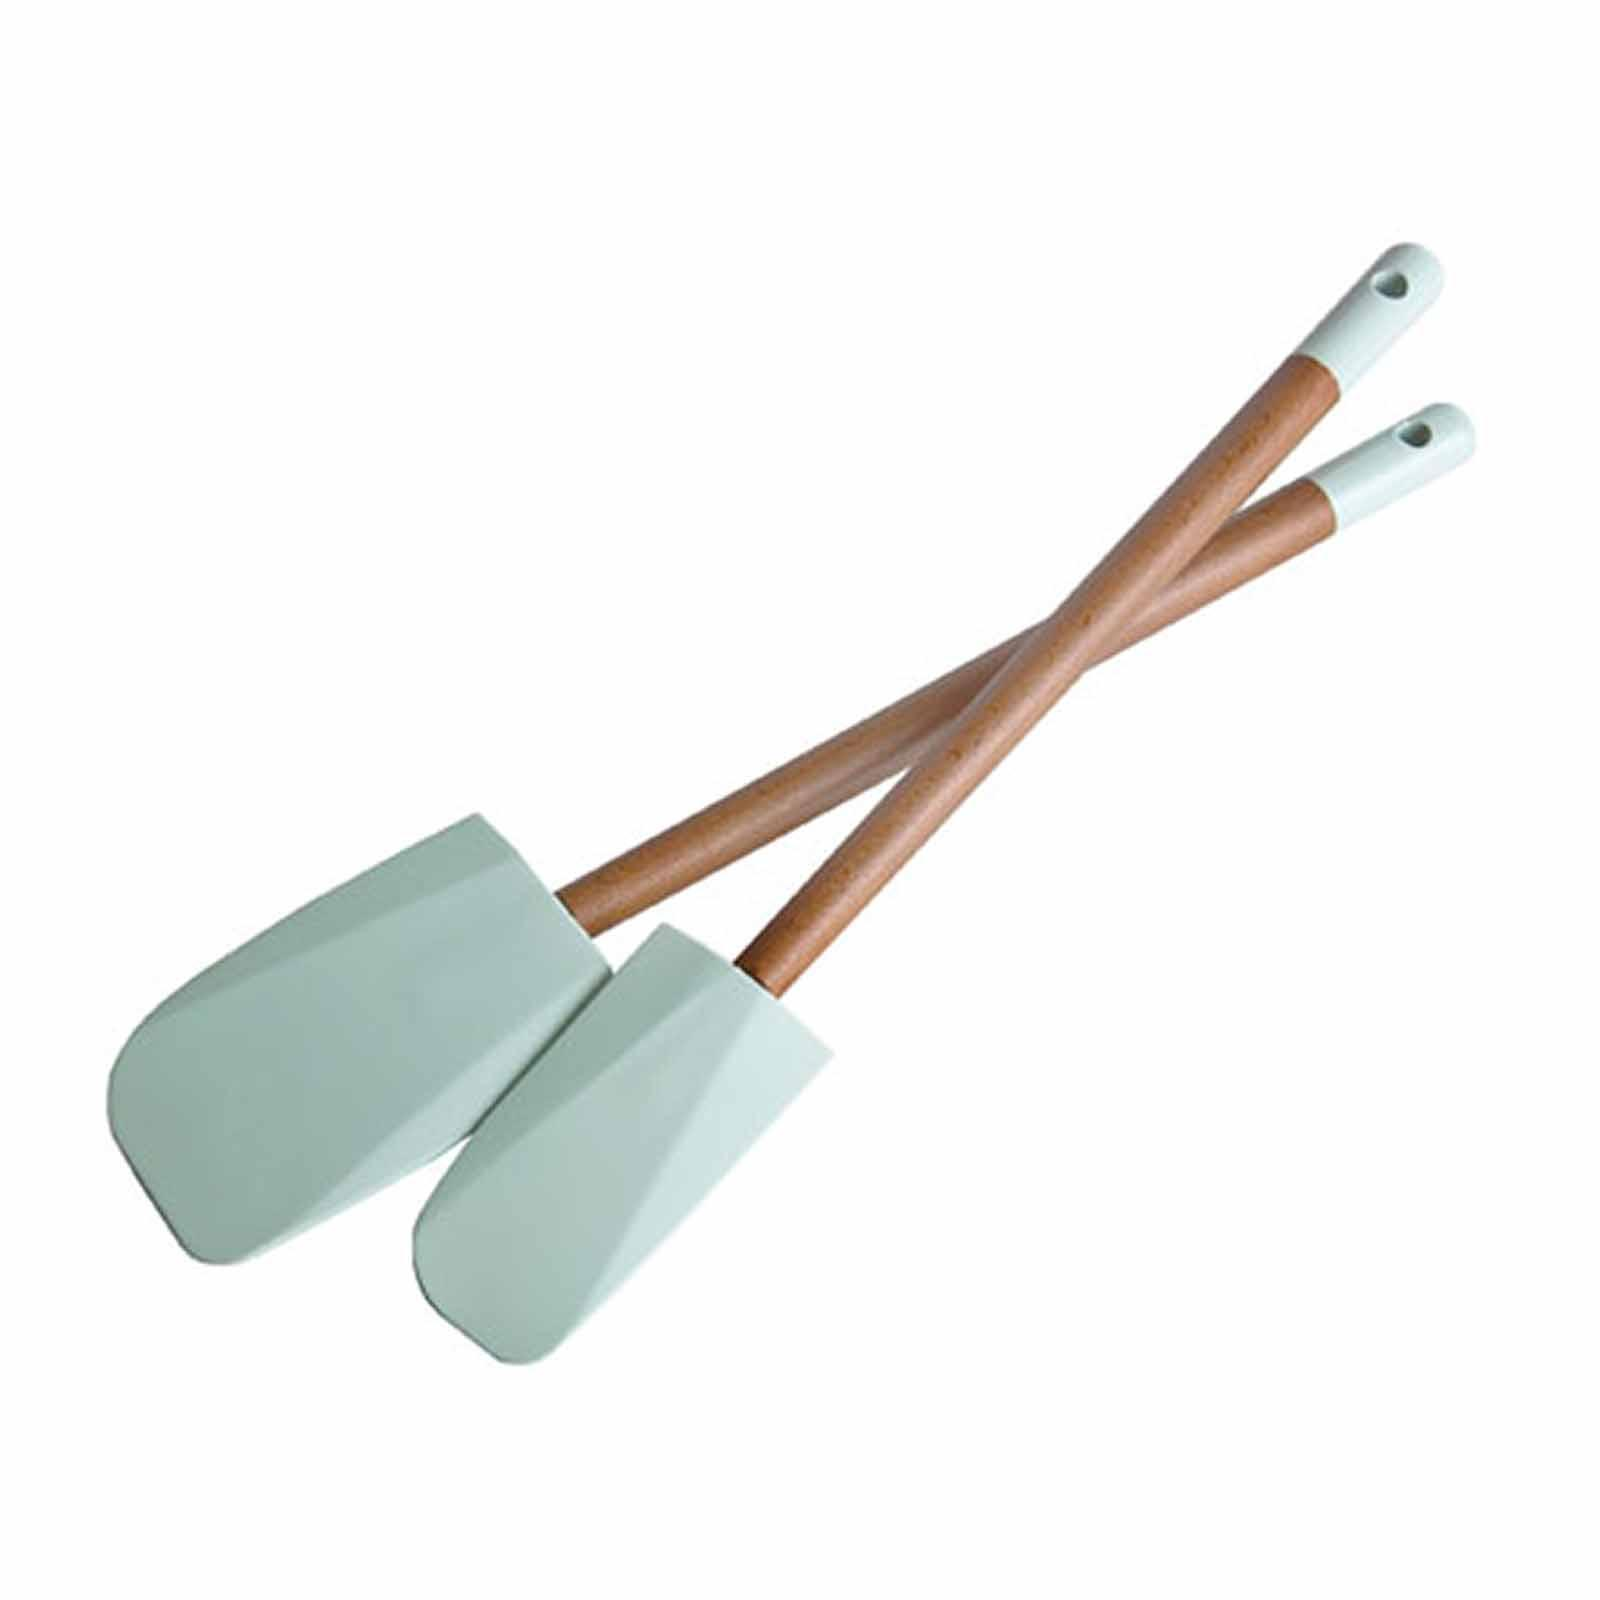 Jamie Oliver Set Of 2 Silicone Spatulas-W3.5Cm And W5.5Cm - By ToTT